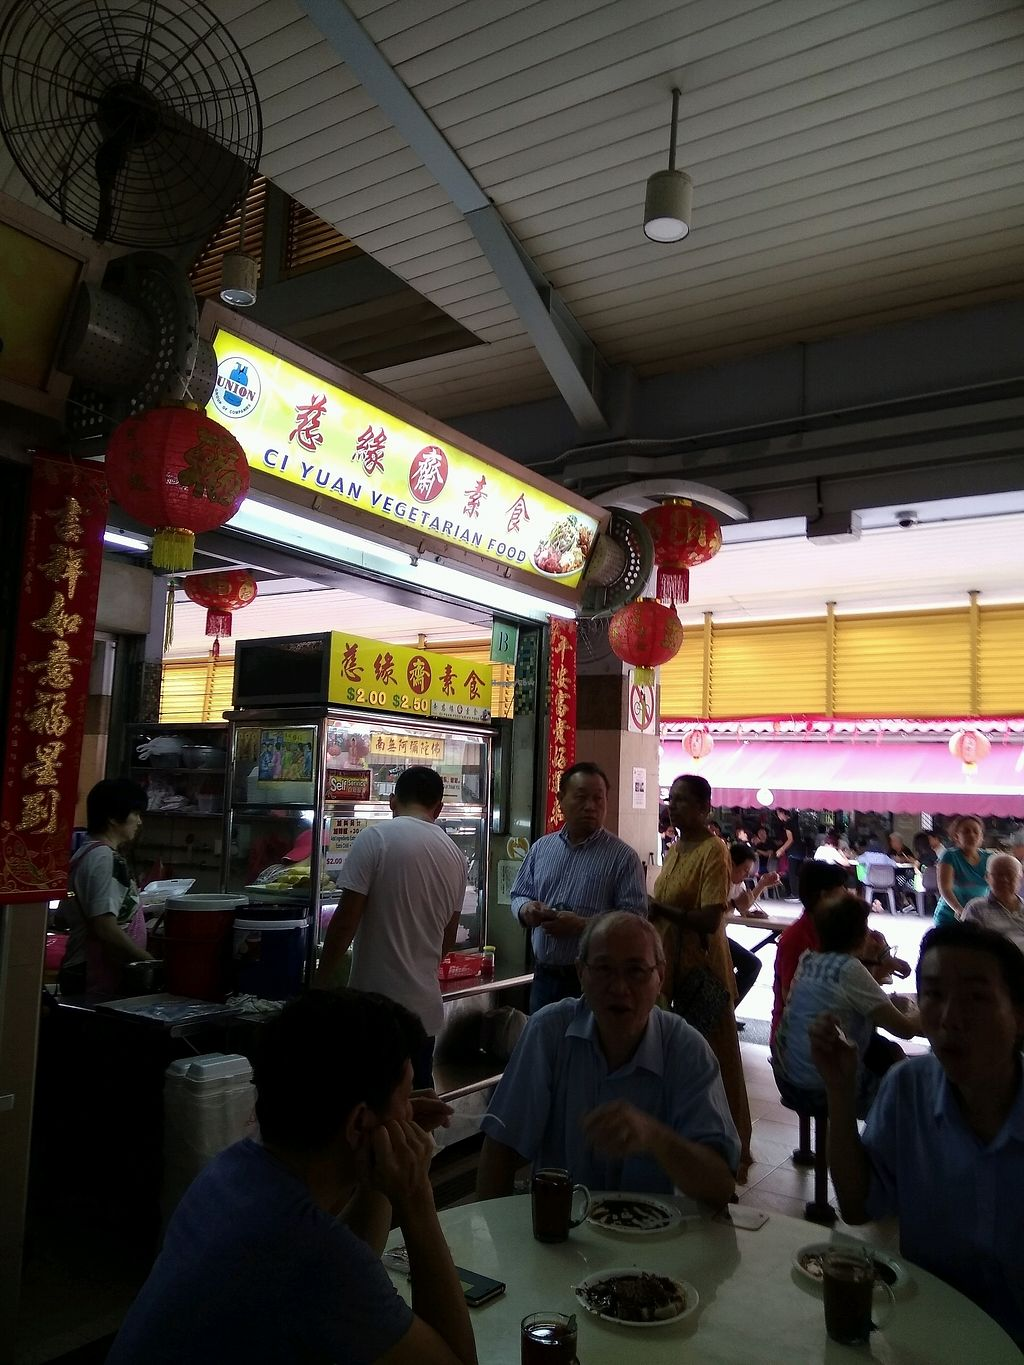 "Photo of Ci Yuan Vegetarian Food  by <a href=""/members/profile/AdelOng"">AdelOng</a> <br/>one of the popular stalls in 341 market <br/> March 1, 2018  - <a href='/contact/abuse/image/78504/365113'>Report</a>"